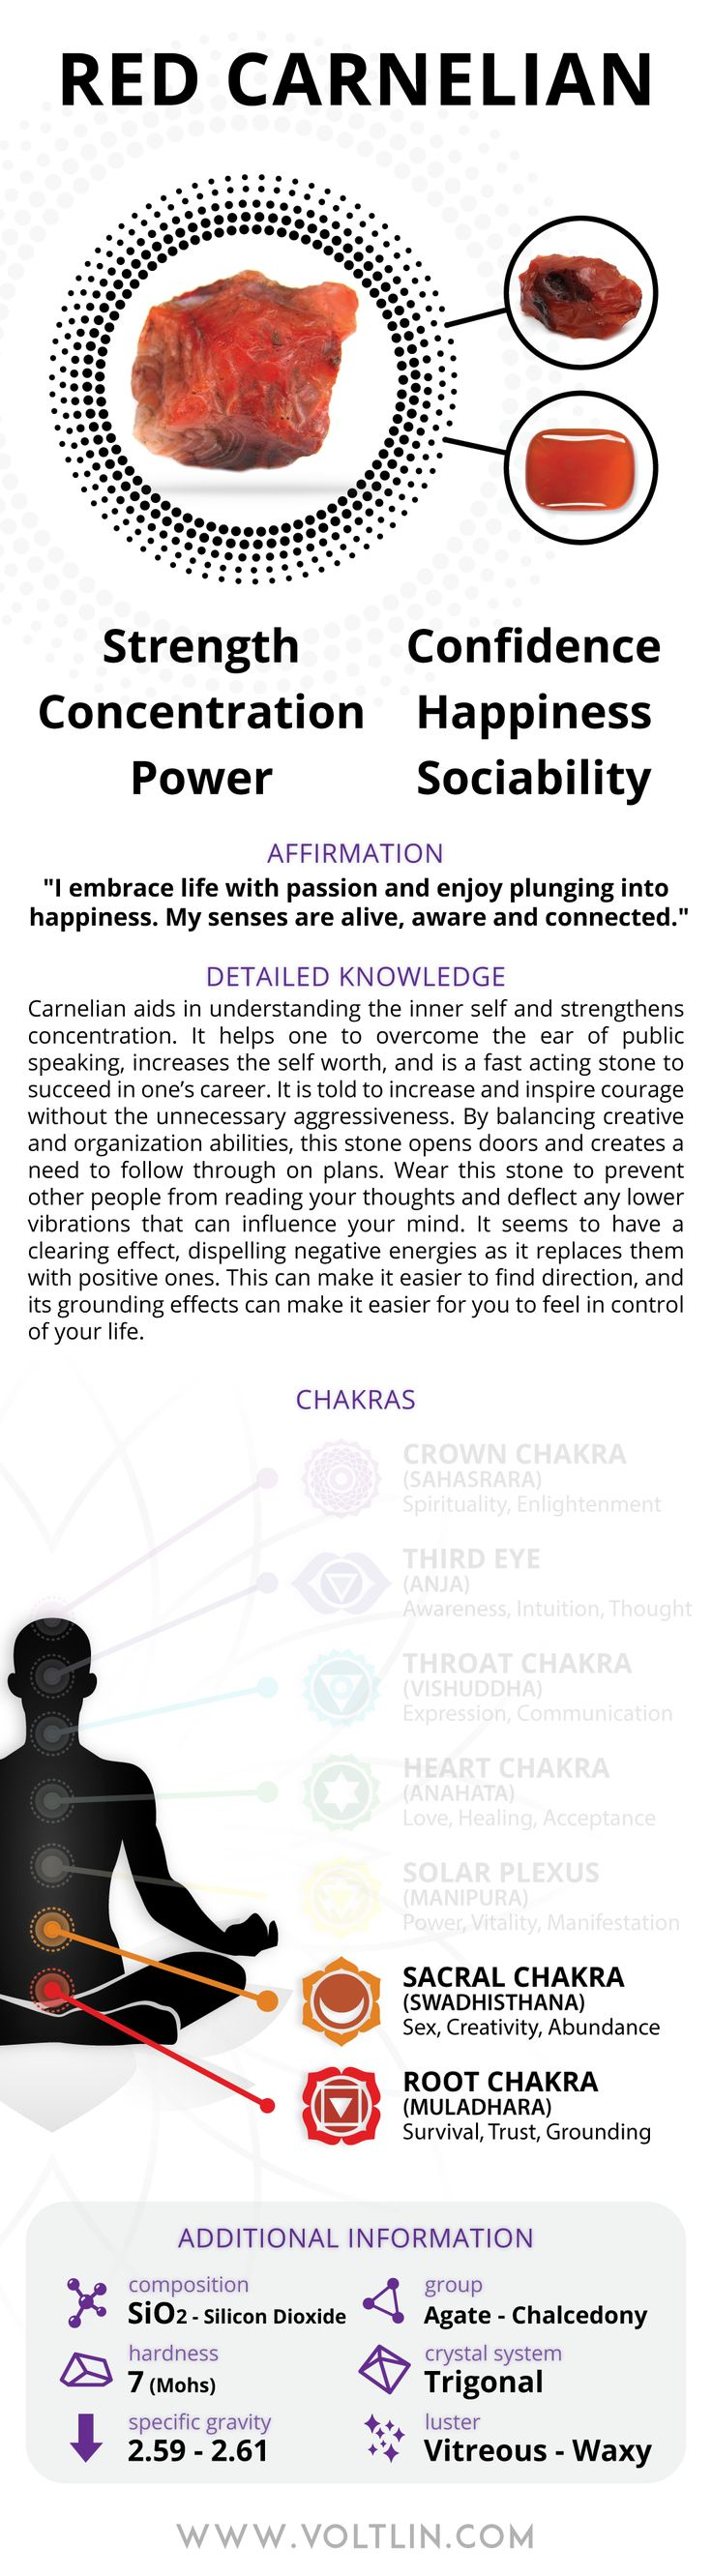 SHIPPING INFORMATION COUNTRY PROCESSING TIME SHIPPING TIME U.S.A. 1 day 2-7 days REST OF WORLD 1 day 4-12 days Description Carnelian aids in understanding the inner self and strengthens concentration.